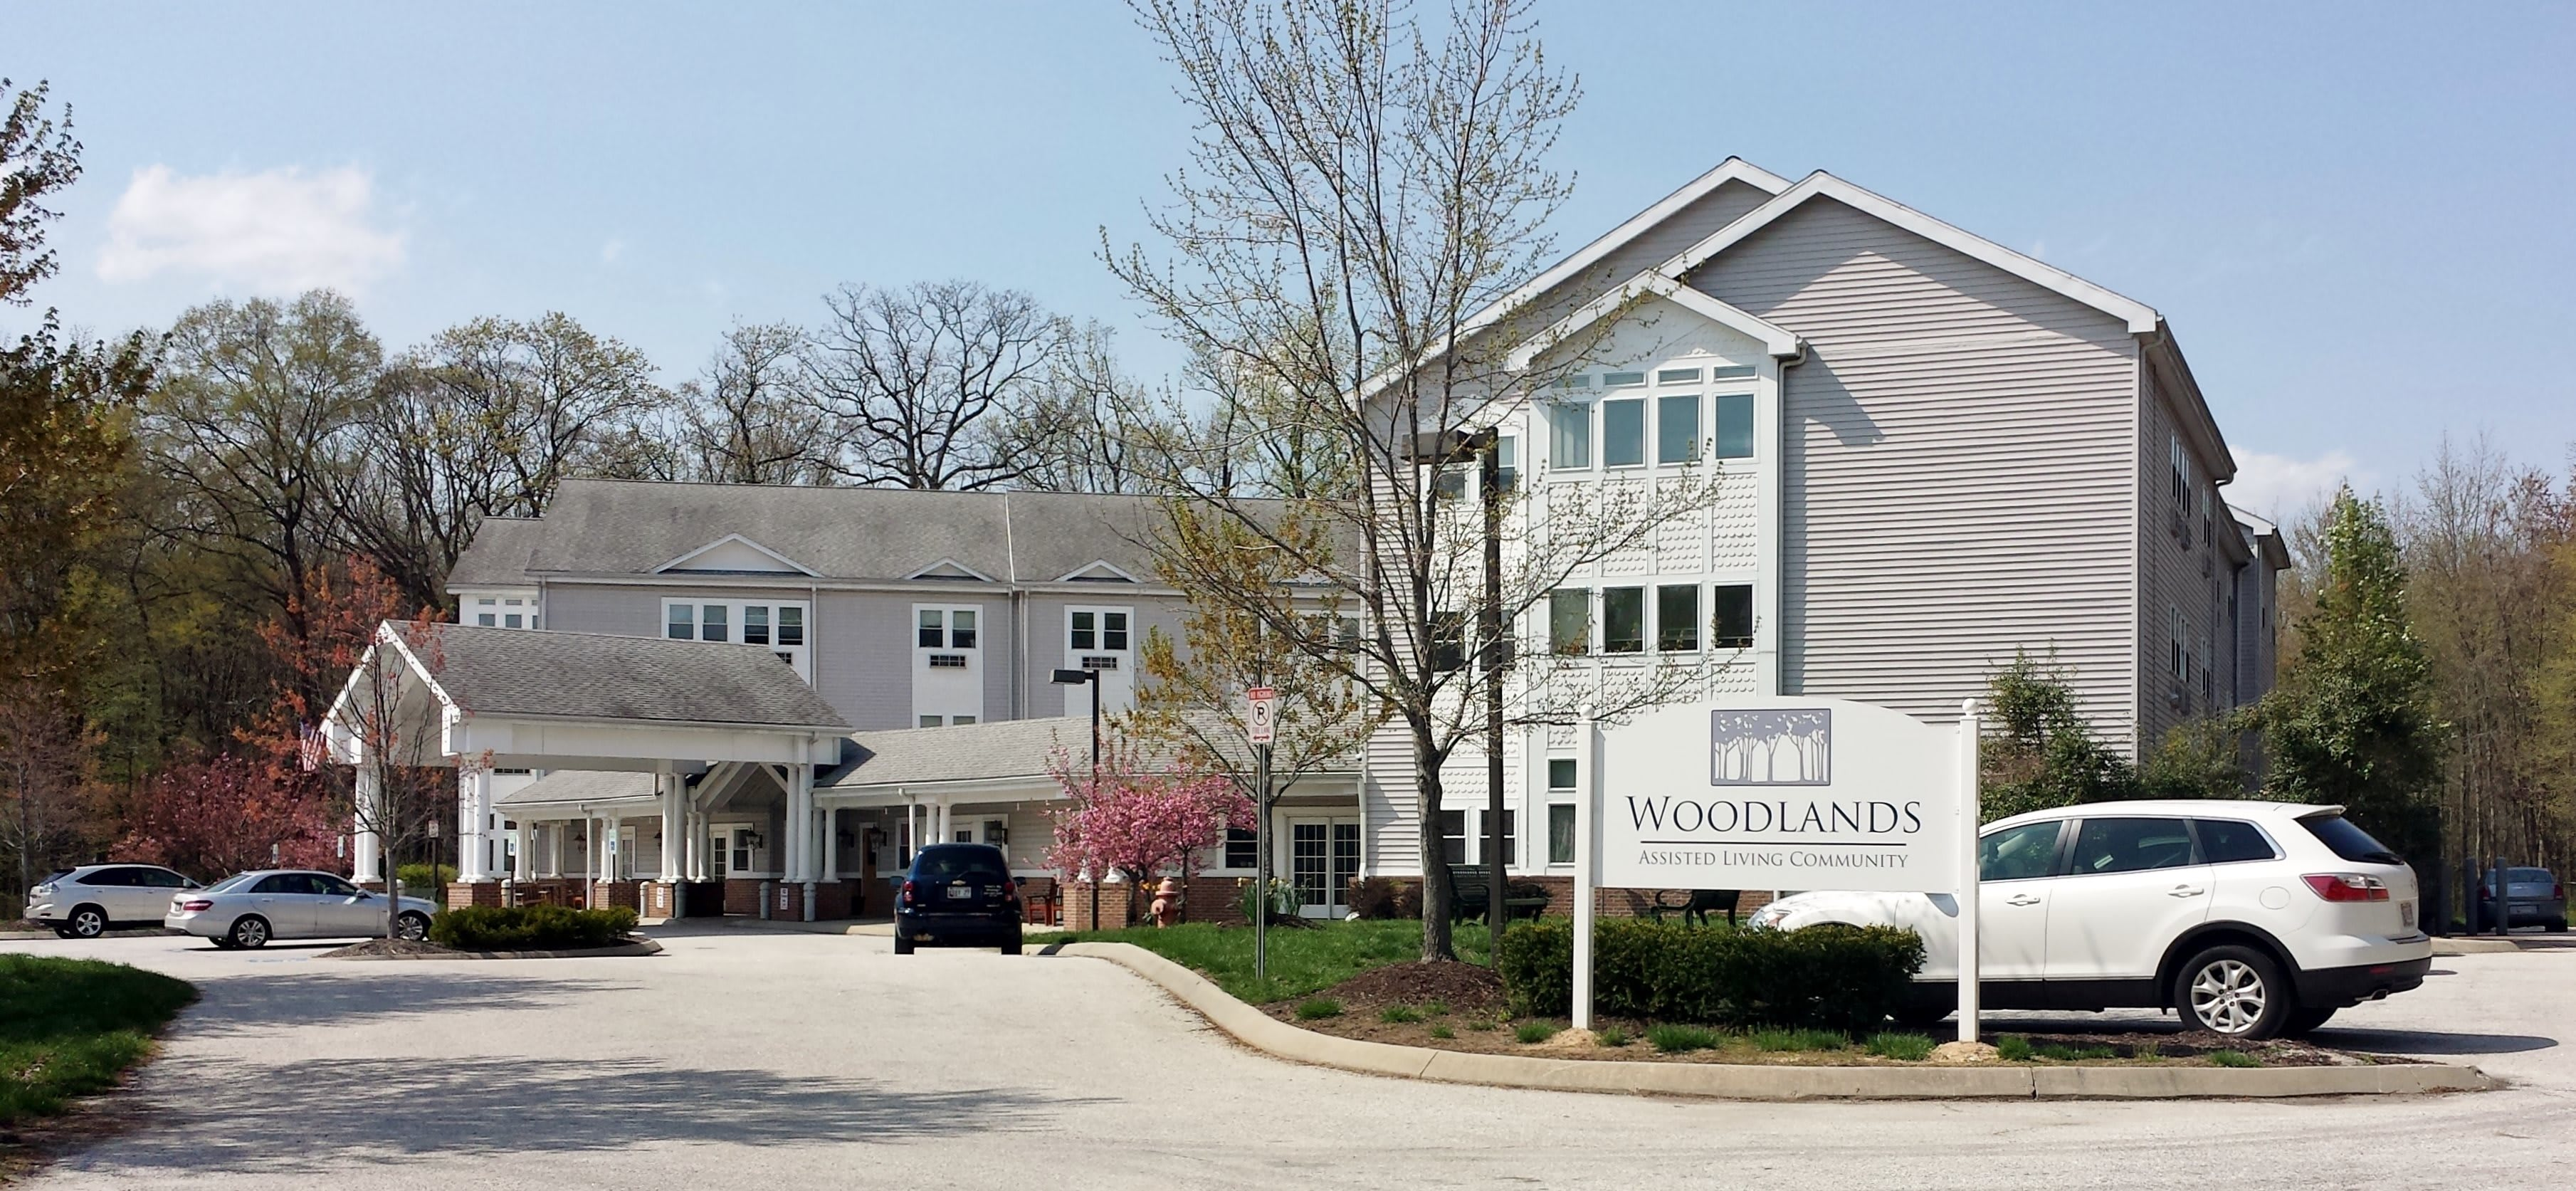 Photo 1 of Woodlands Assisted Living